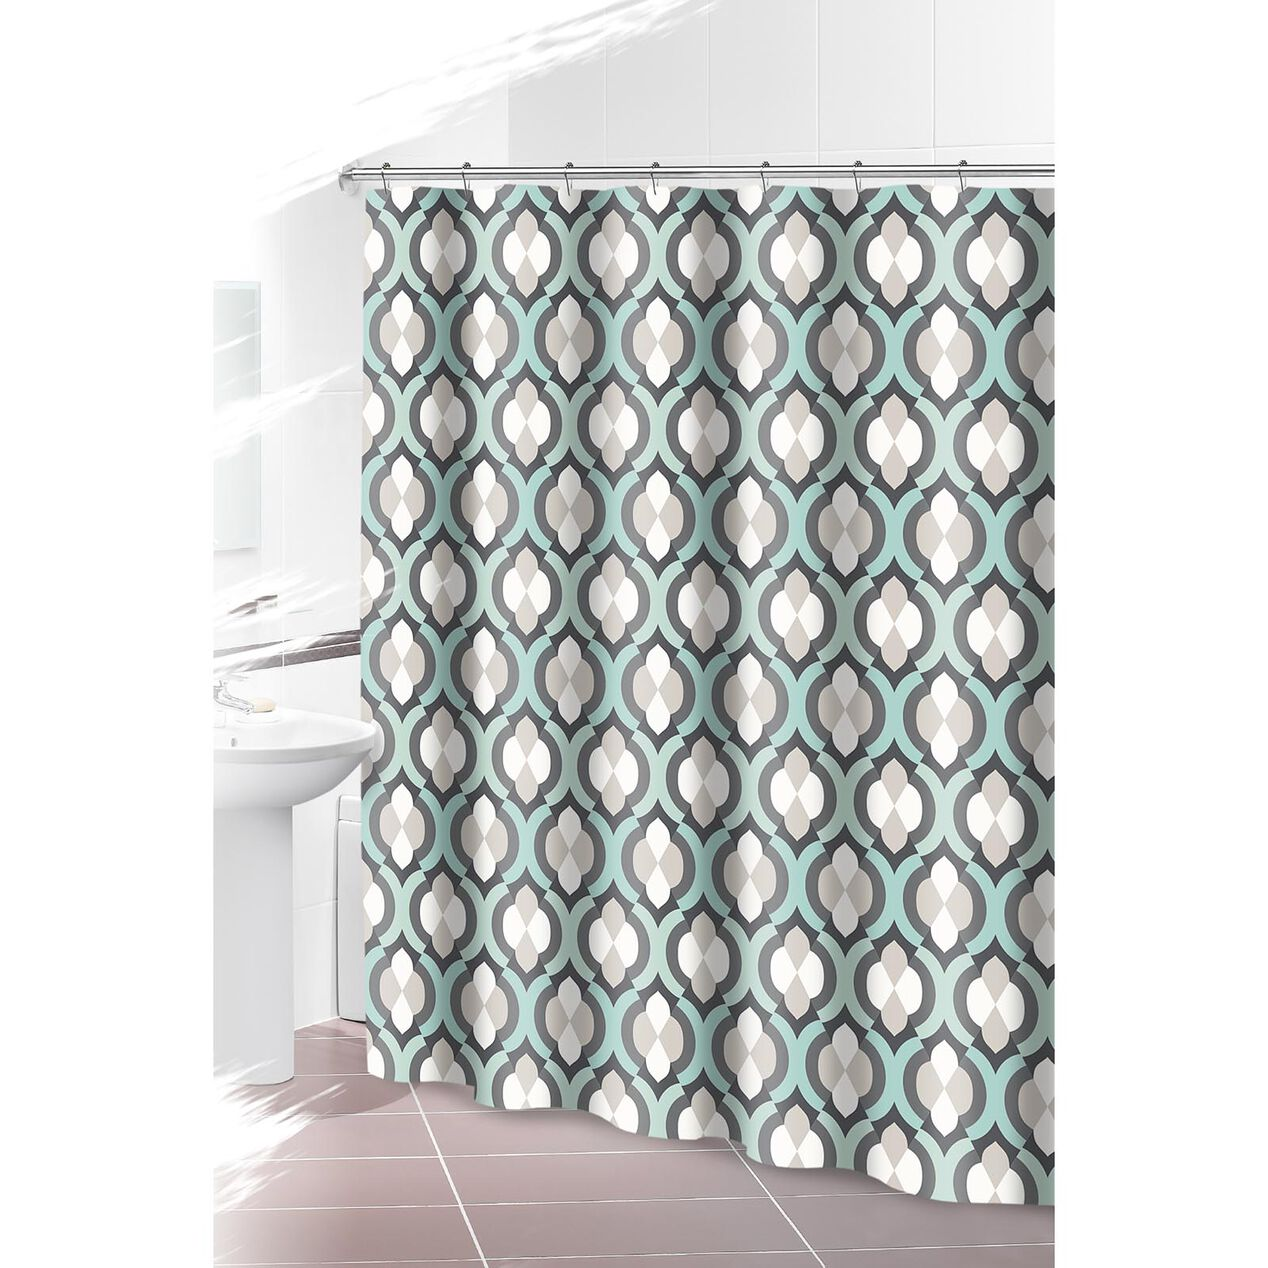 Teal And Gray Shower Curtain grey and teal bathroom accessories